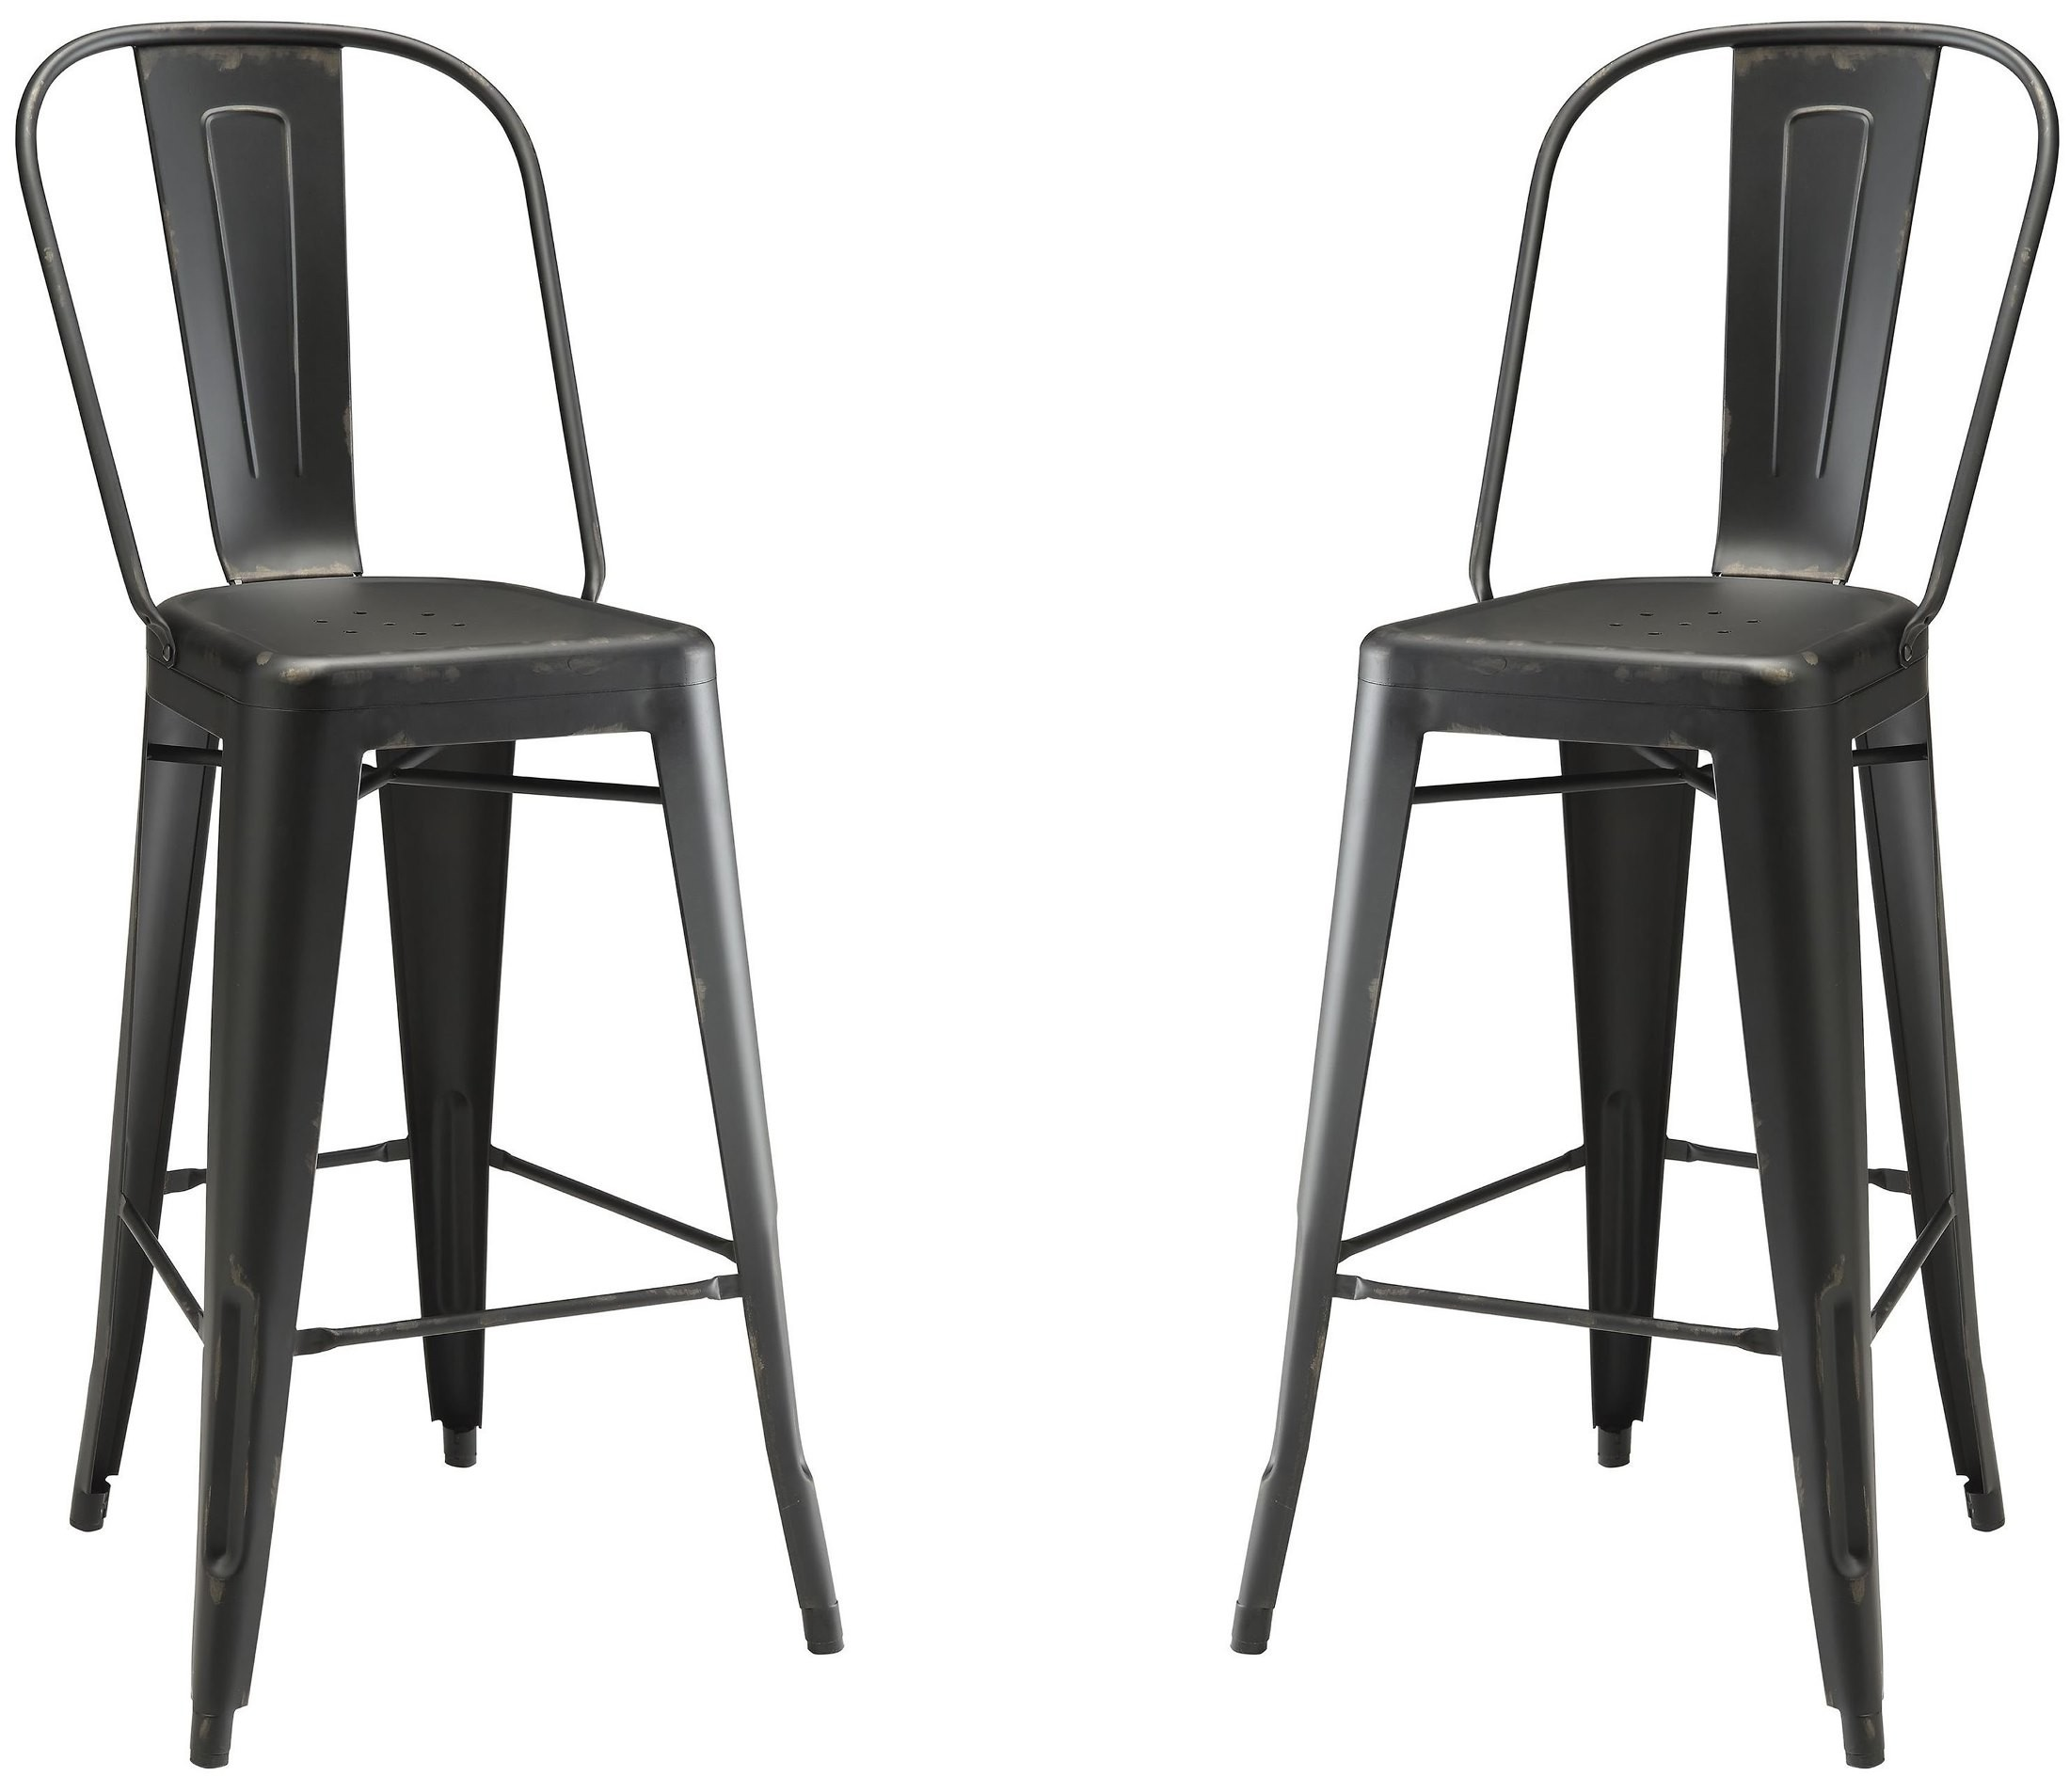 Black Metal Bar Stool 106012 Coaster Furniture